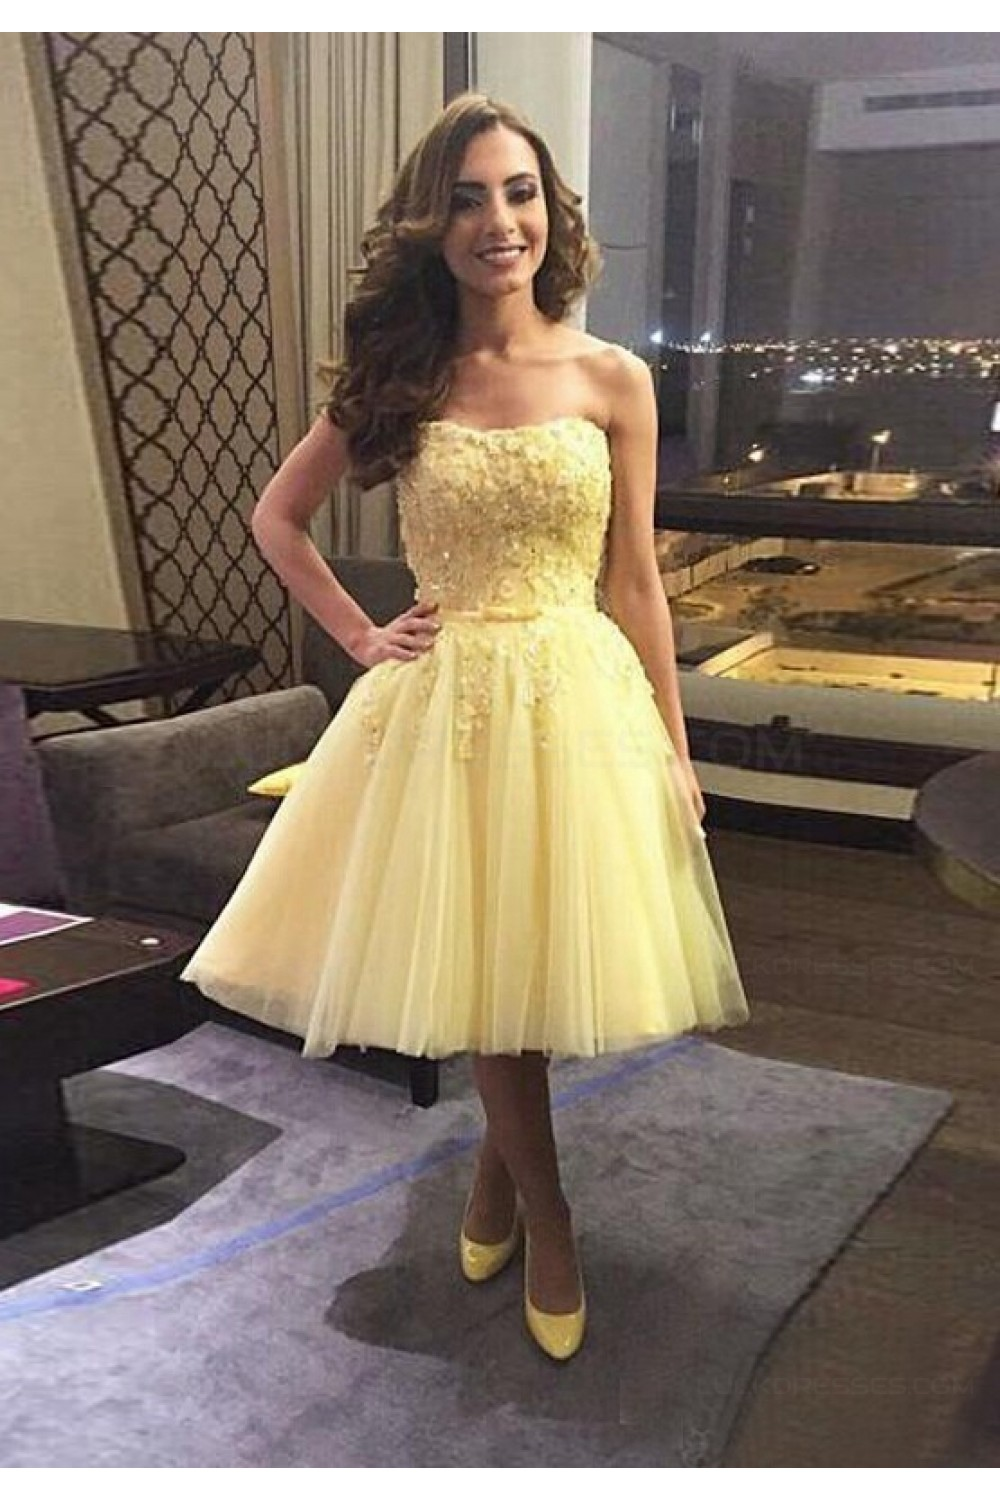 latest selection of 2019 hot-selling real best wholesaler Short Yellow Lace Tulle Homecoming Cocktail Prom Dresses Party Evening  Gowns 3020542